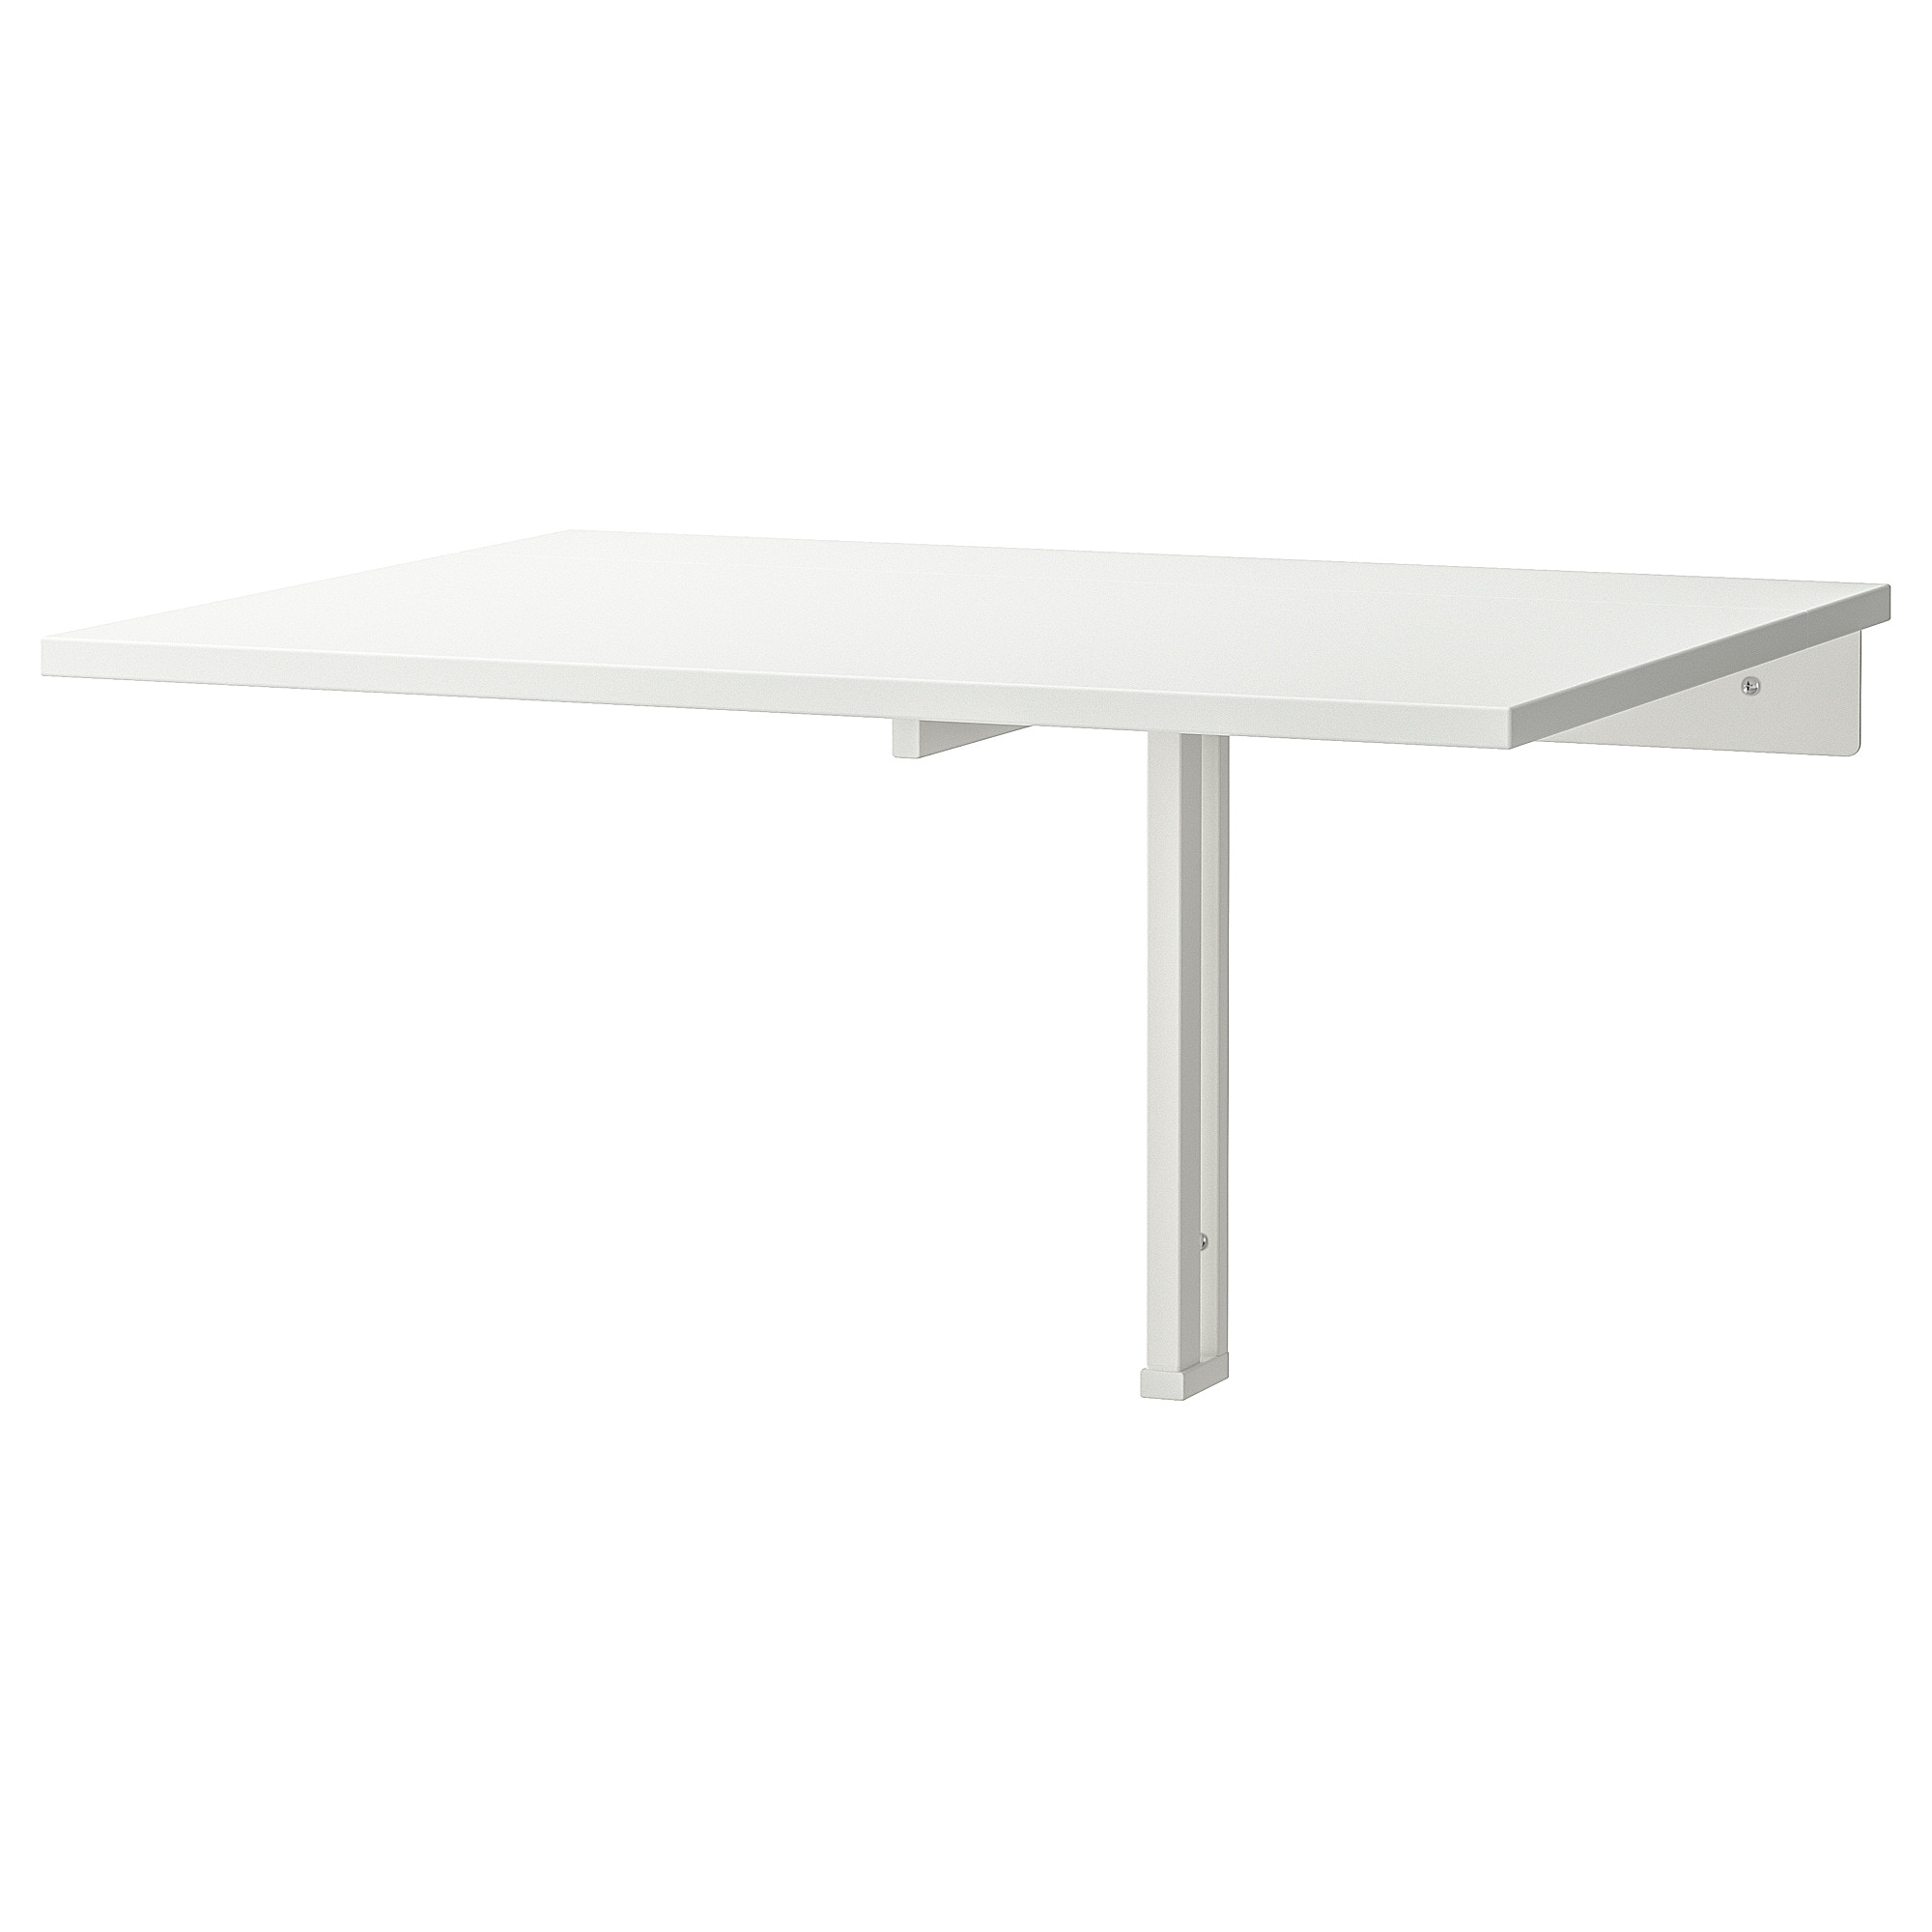 Küchentische Ikea Norberg Wall Mounted Drop Leaf Table White